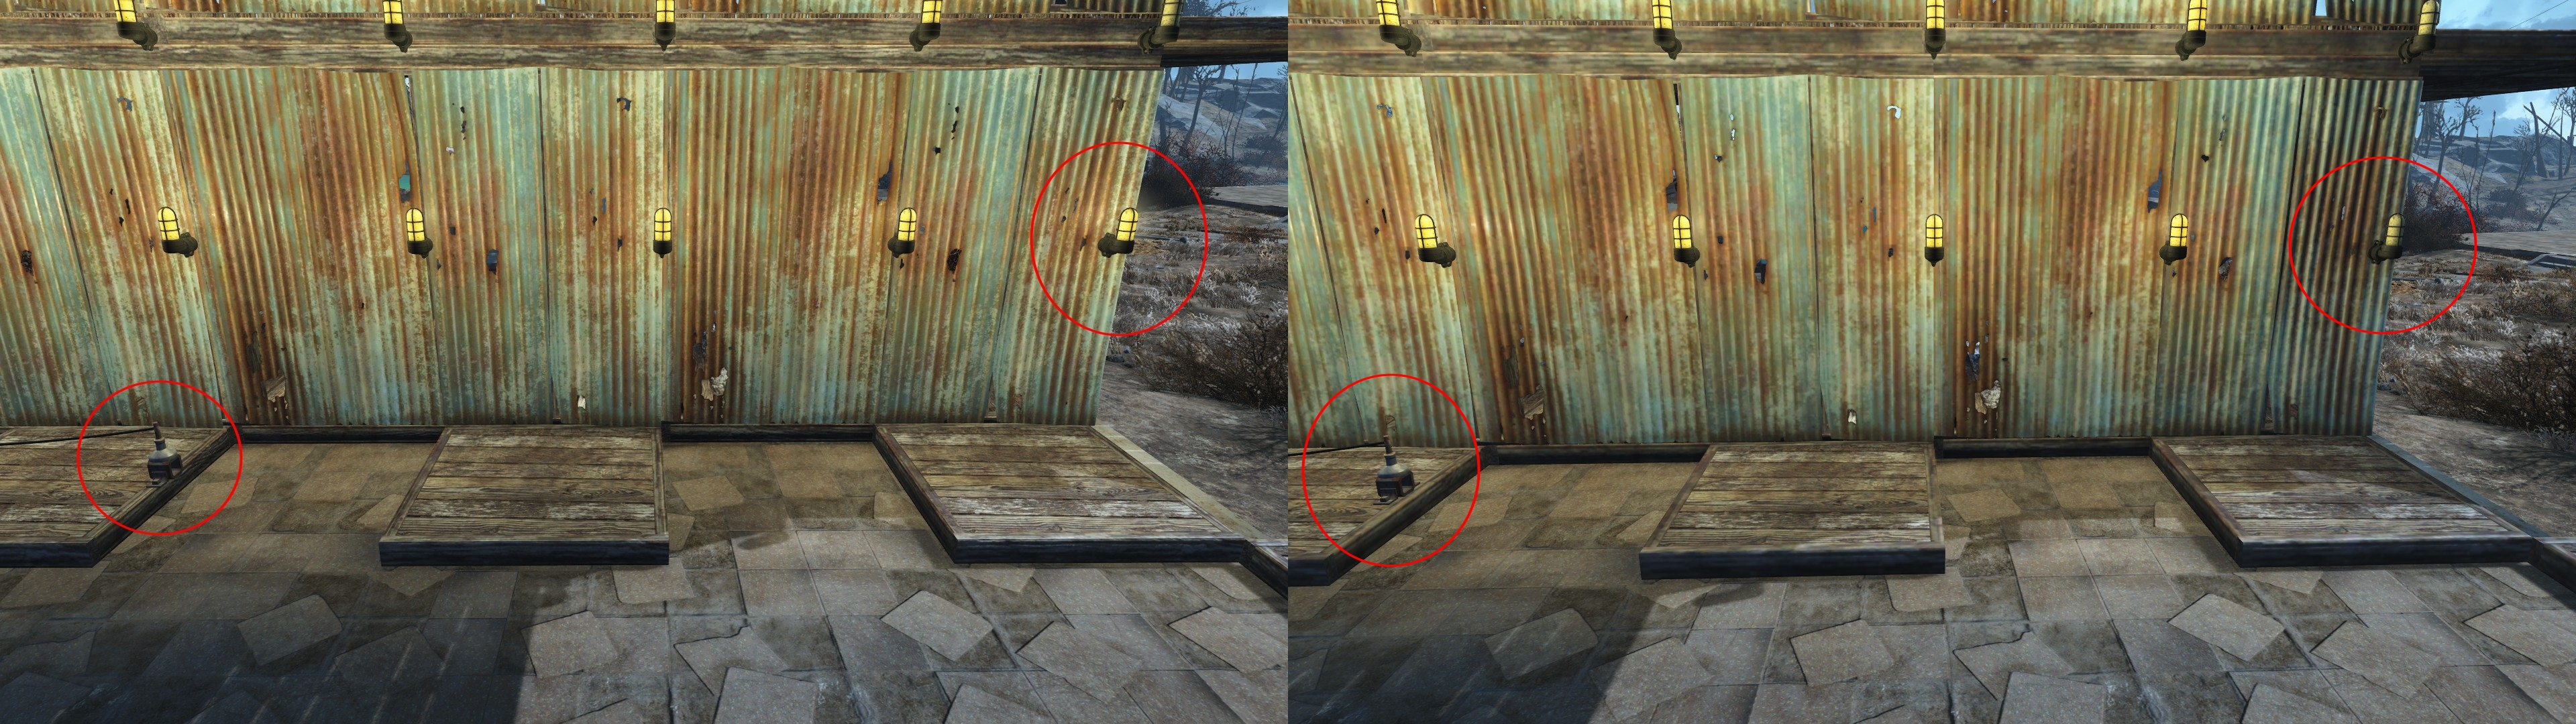 fallout 4 how to stop wall snapping building